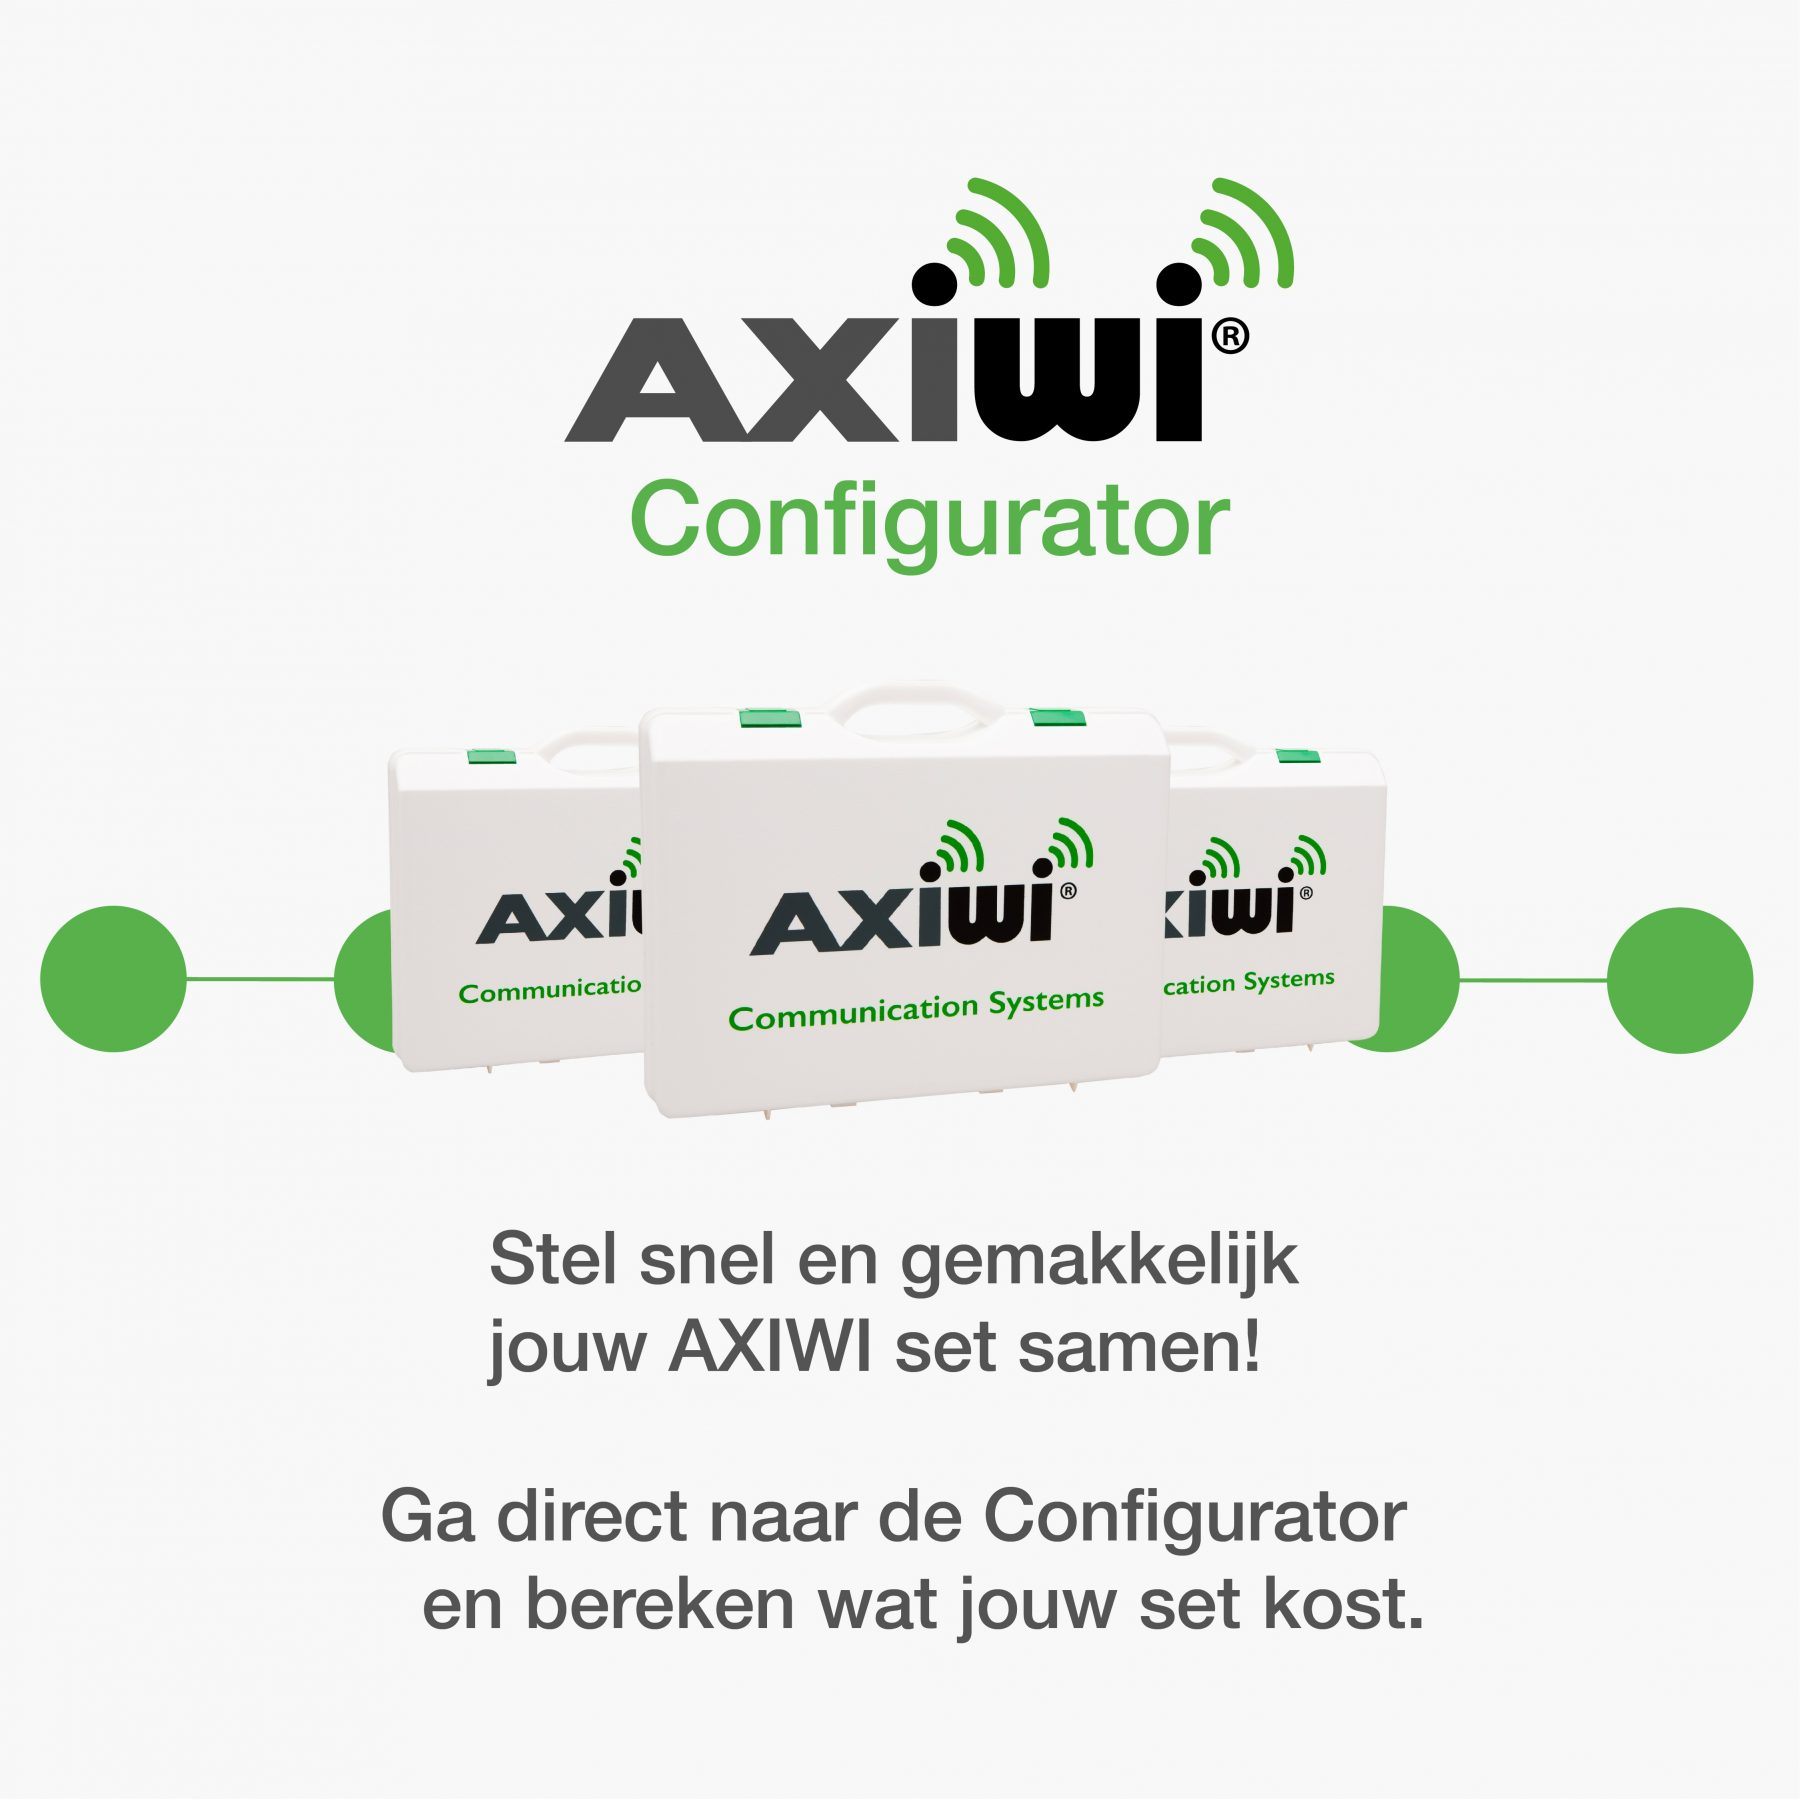 start-axiwi-configurator-website